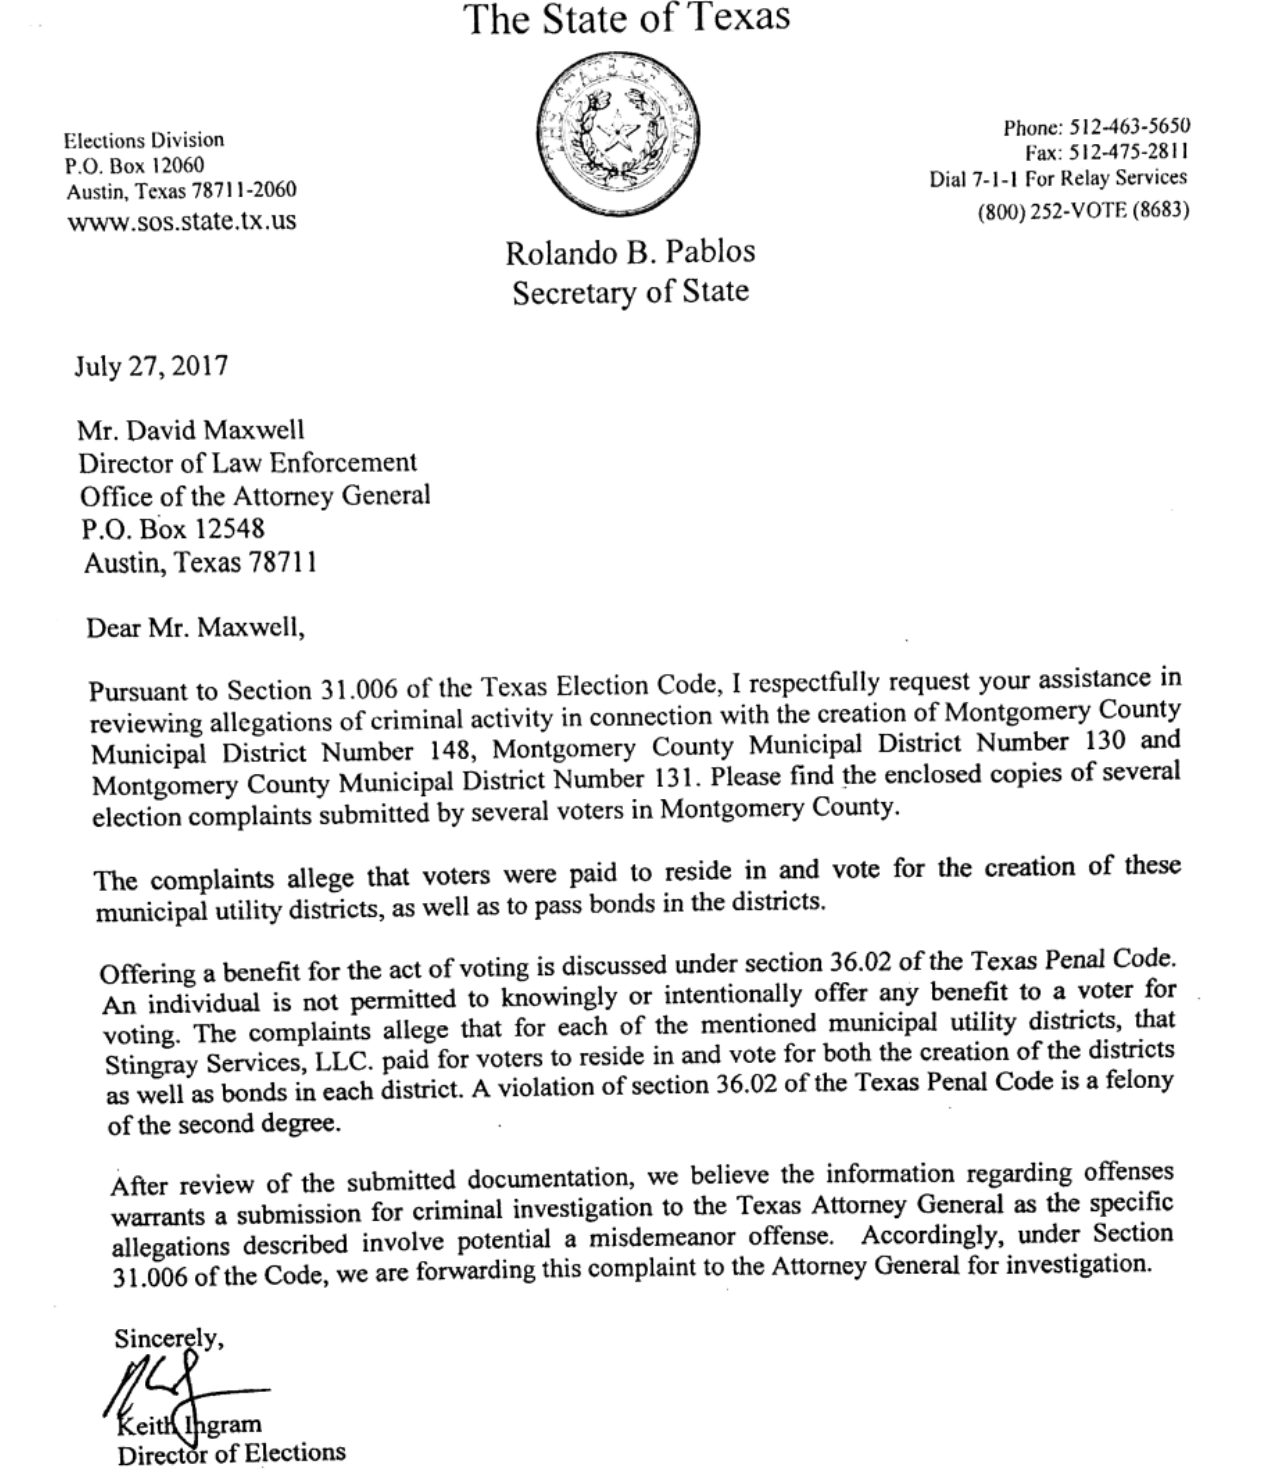 Texas Secretary of State Makes Criminal Referral to Attorney General